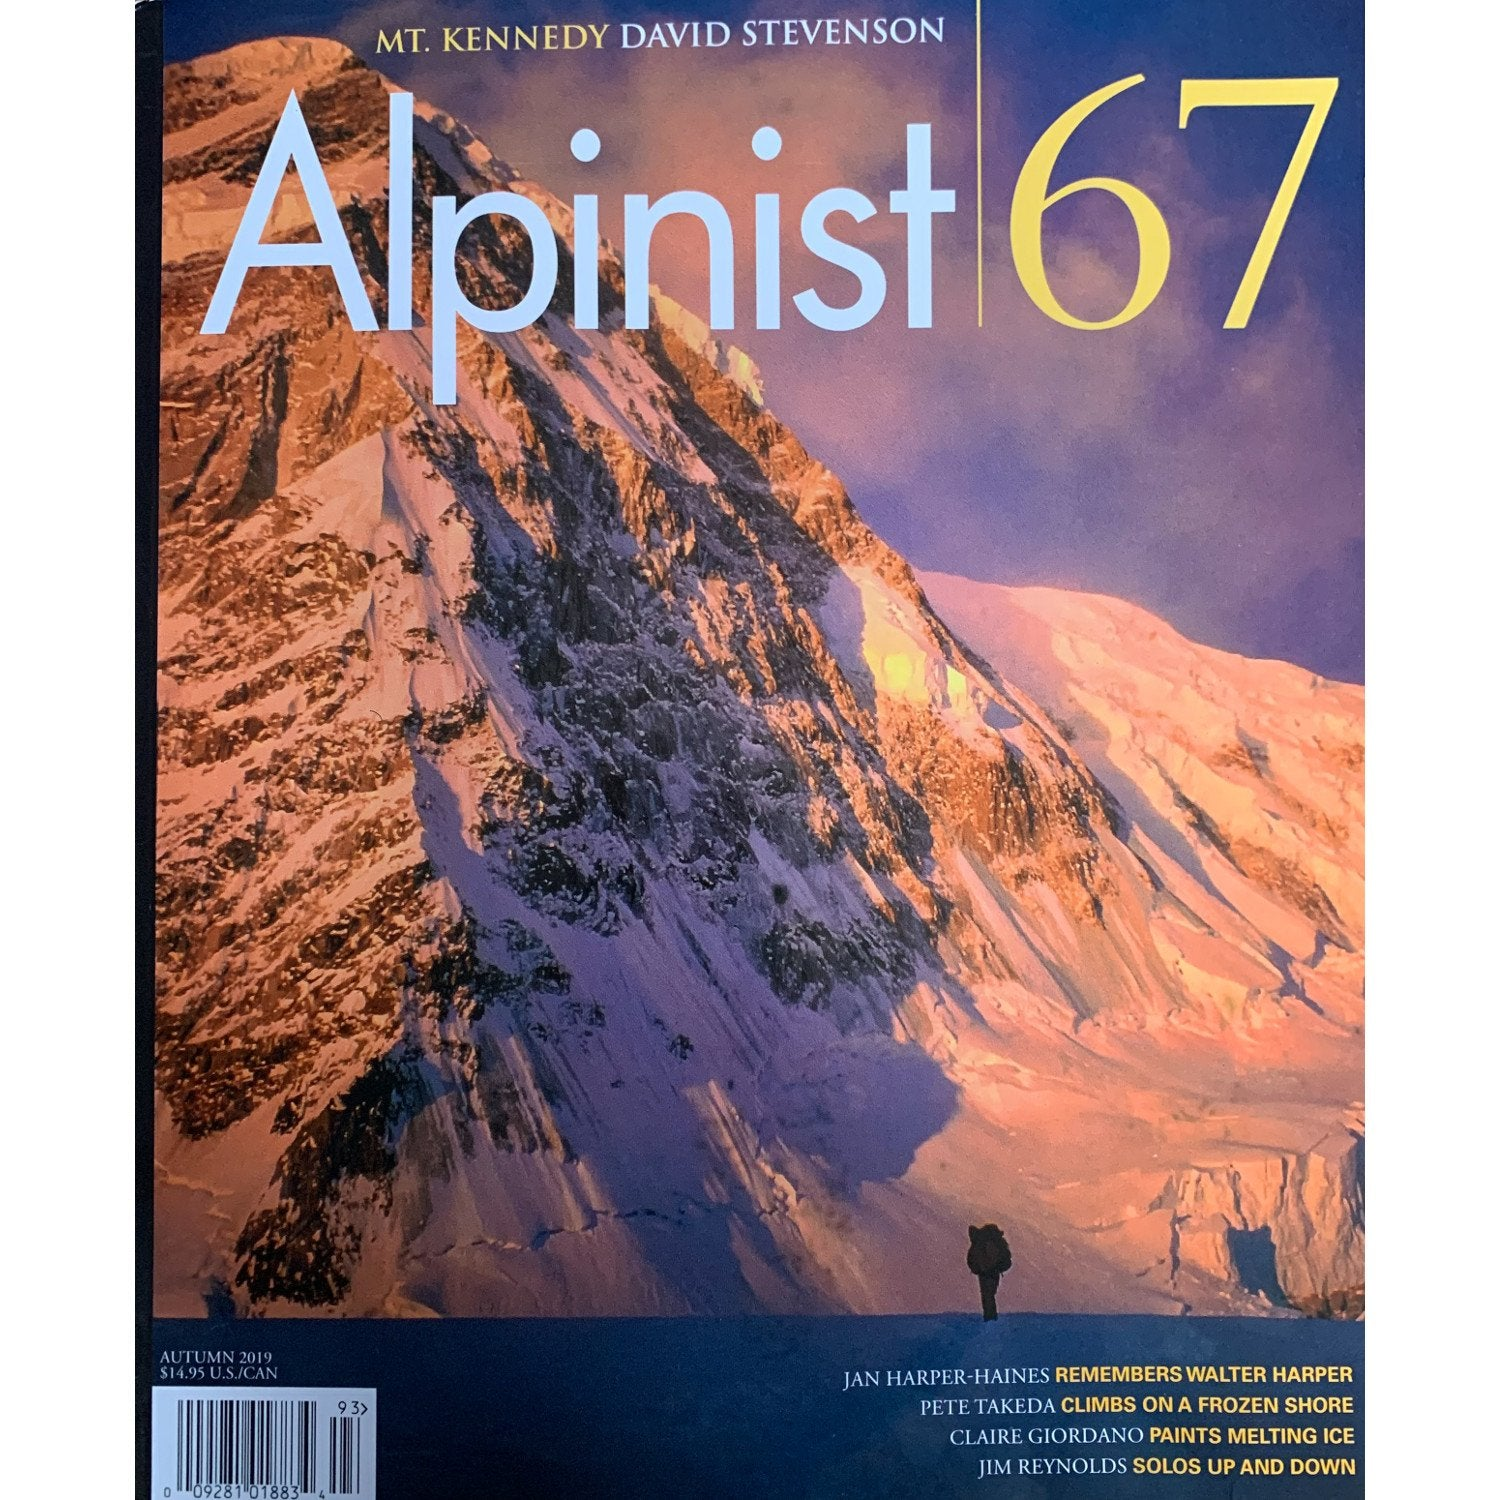 Alpinist 67 Magazine Front Cover